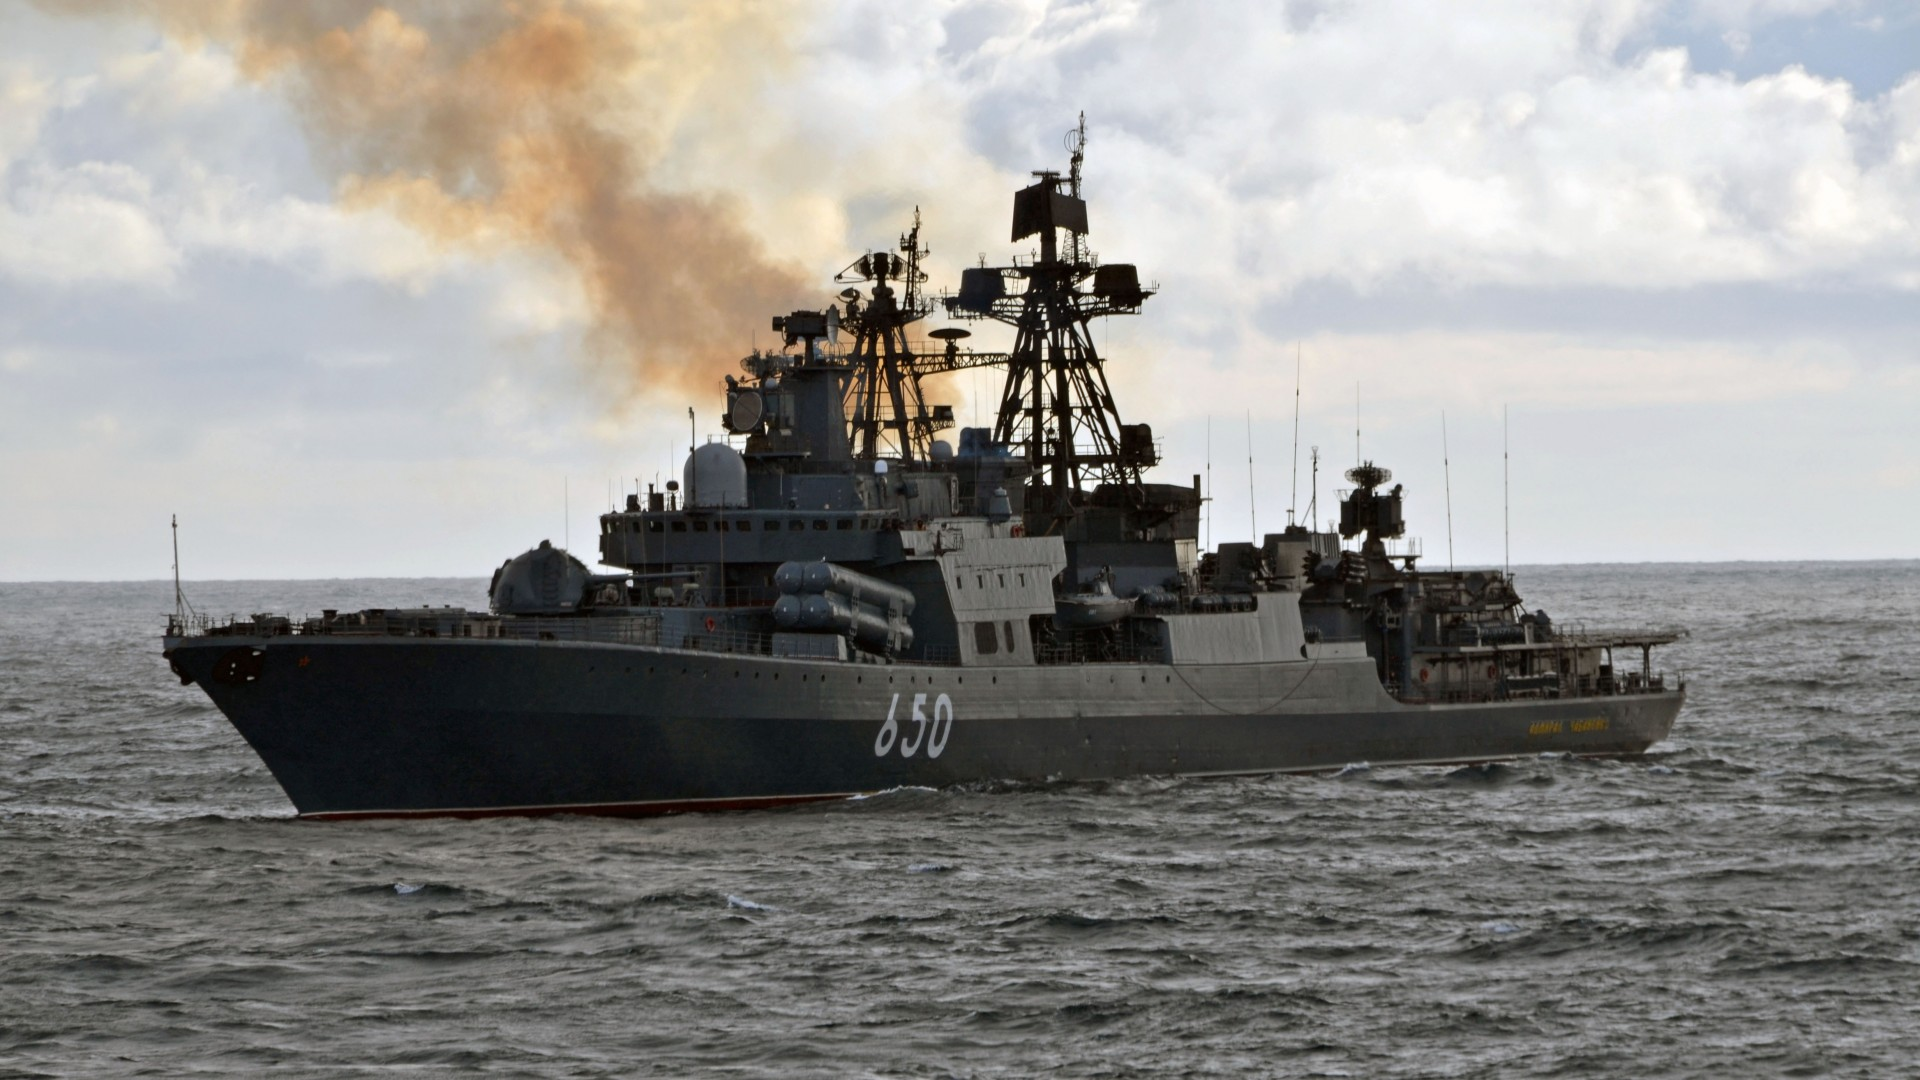 Admiral Chabanenko, destroyer, 650, Udaloy-class, Russian Navy, Russia, warship, missile, sea (horizontal)